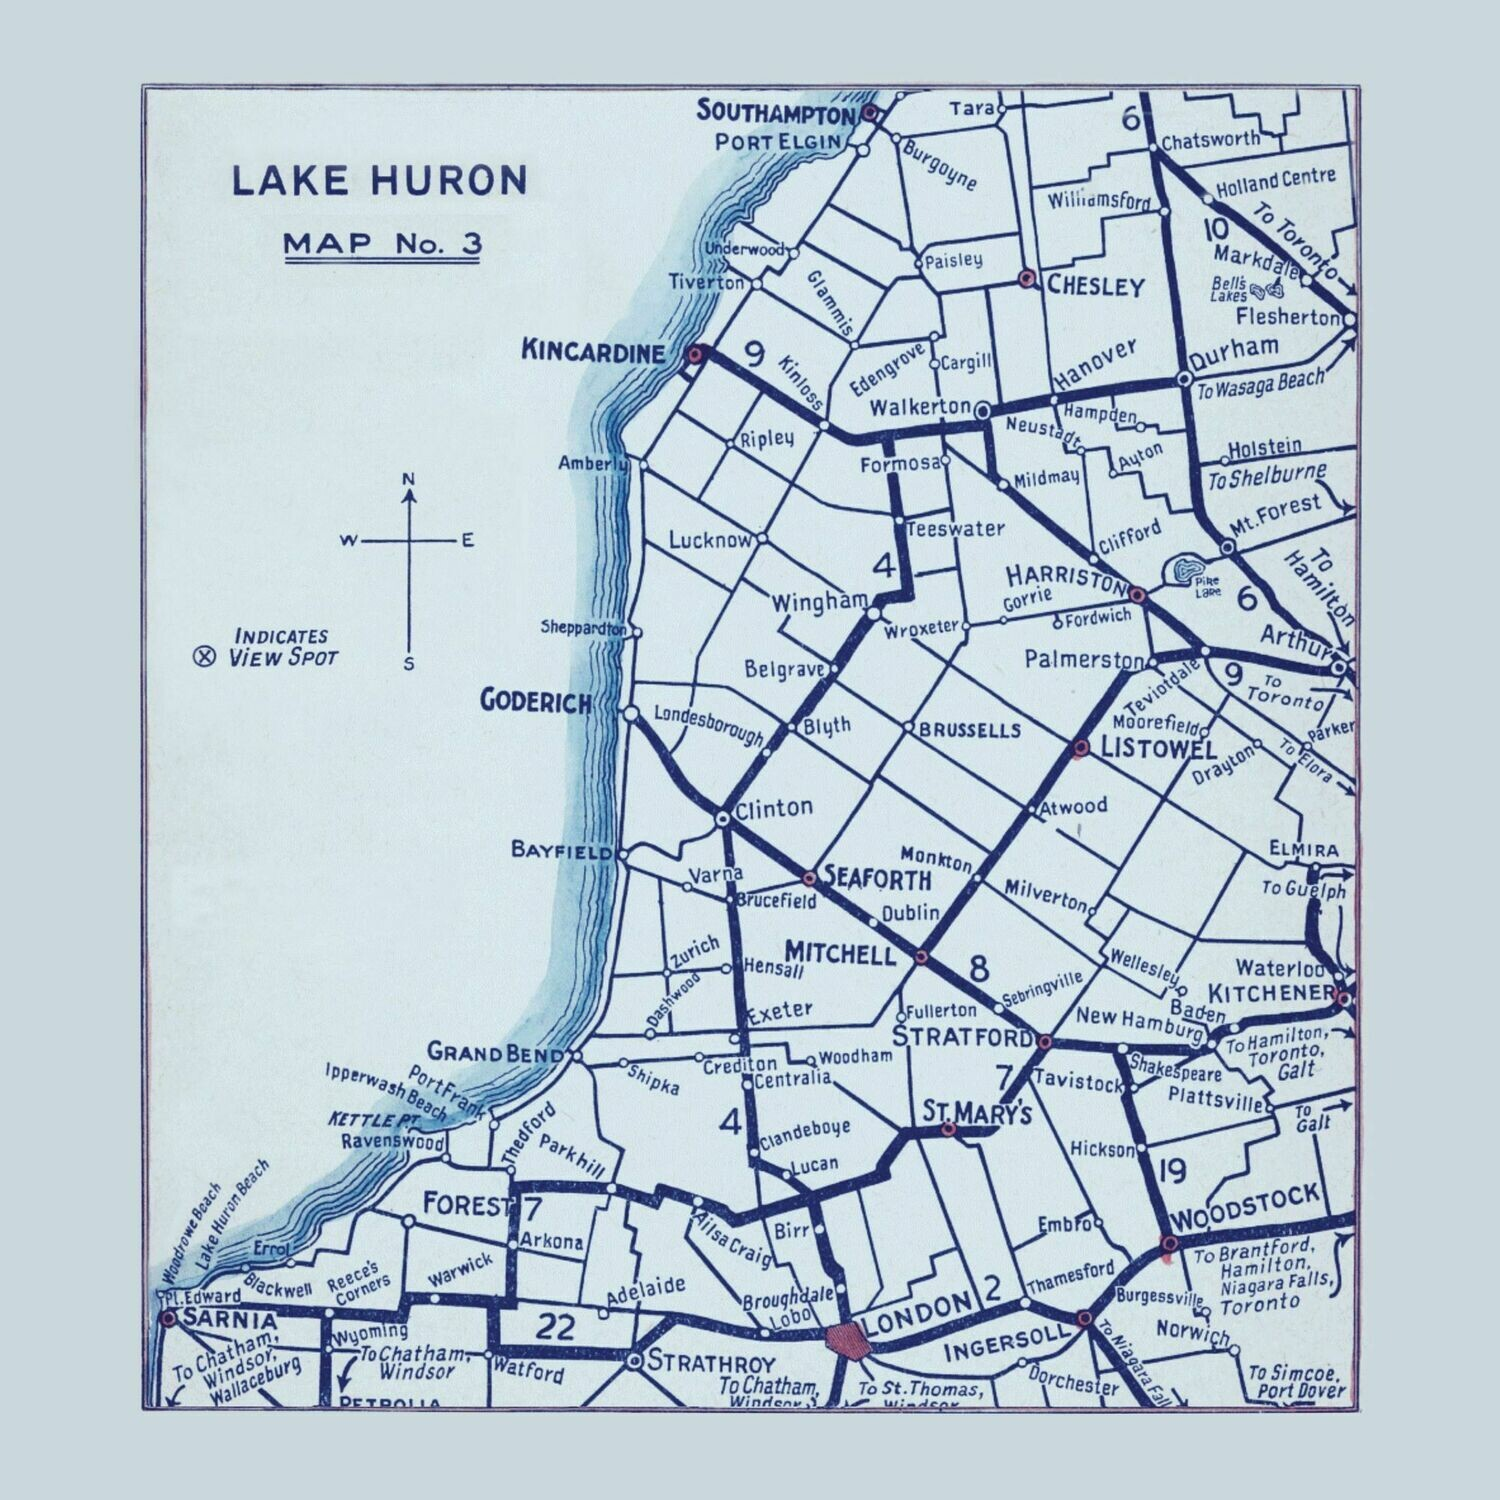 Lake Huron Notecards